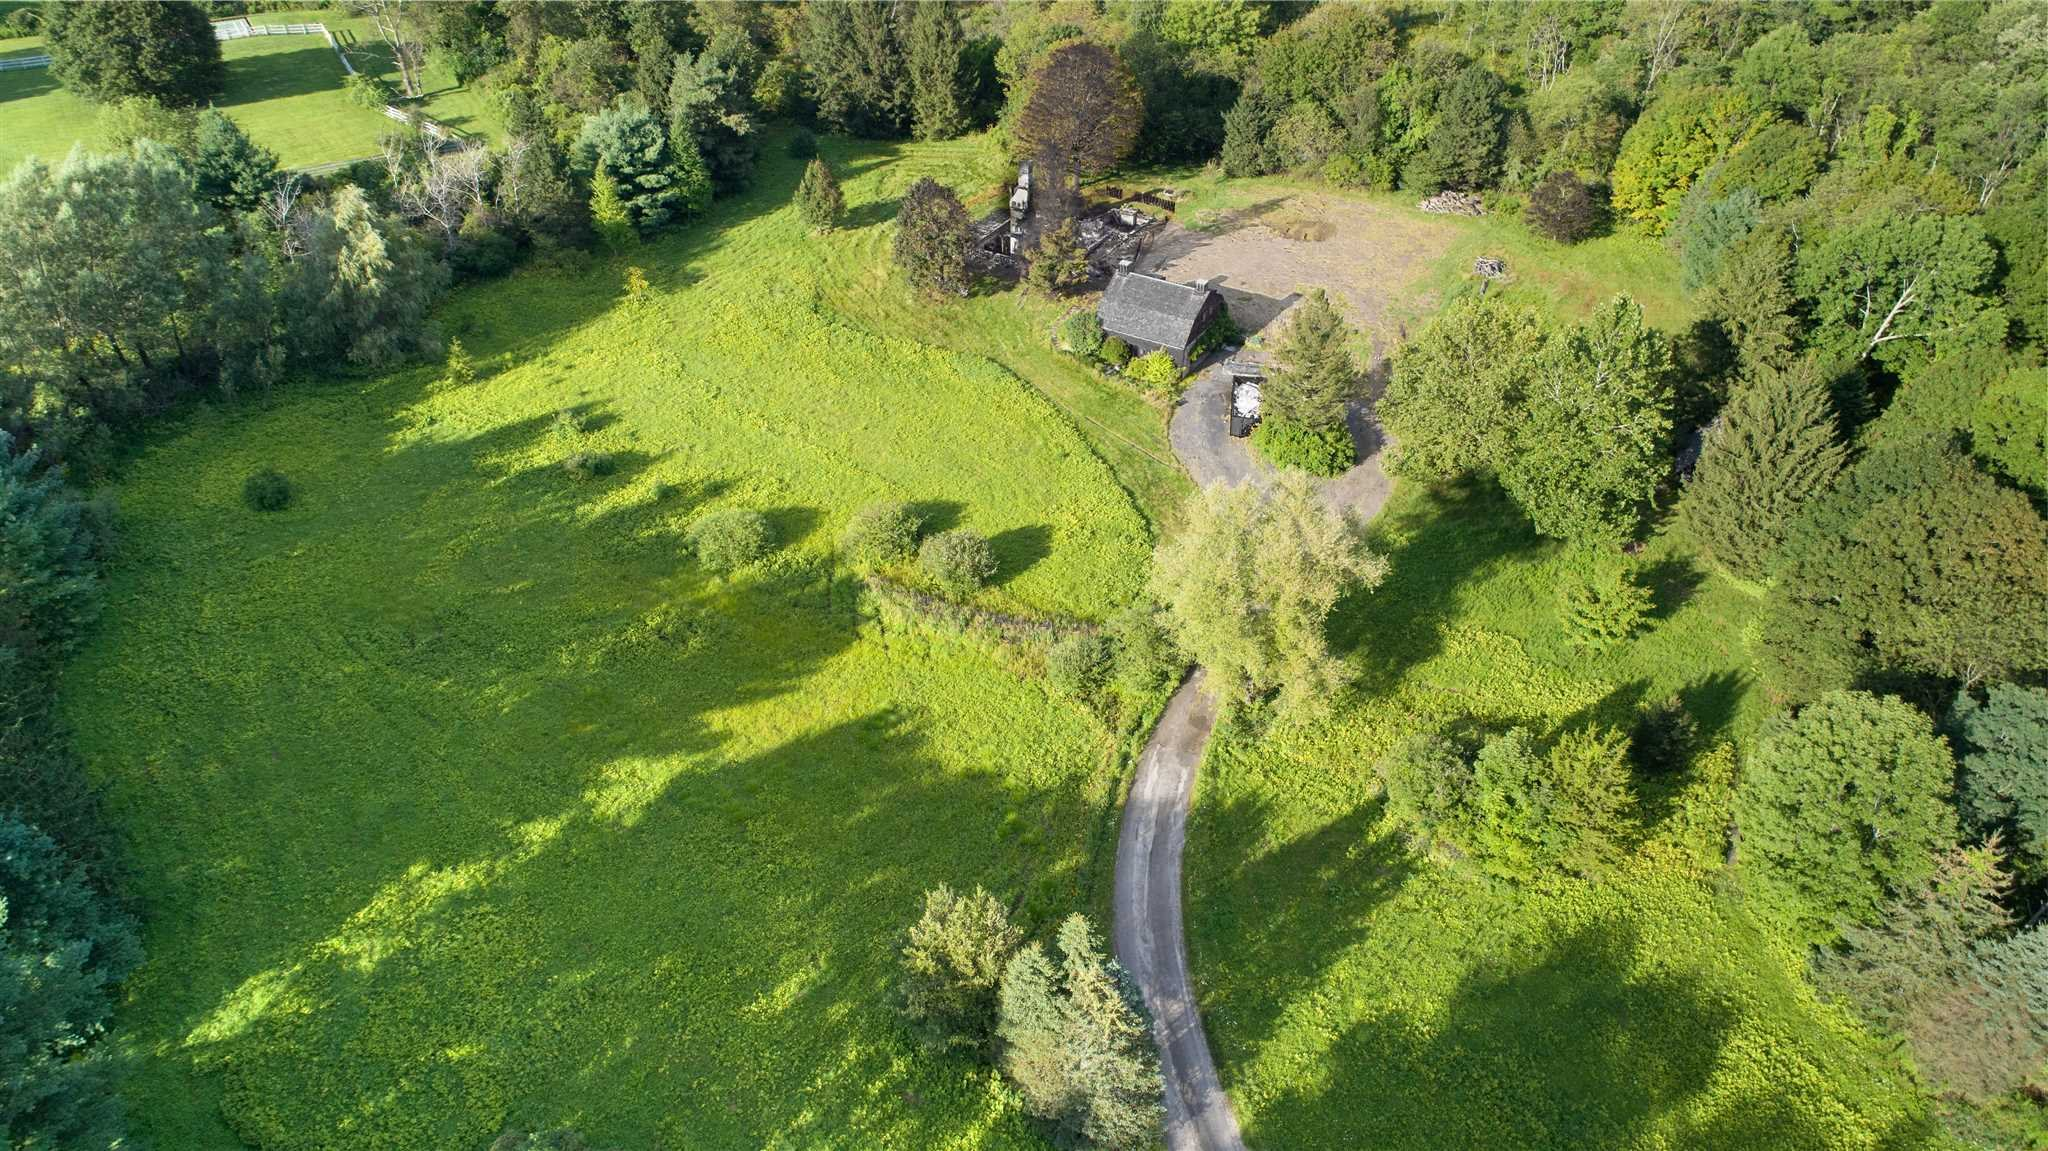 Single Family Home for Sale at 5 MEETING HOUSE Road 5 MEETING HOUSE Road Pawling, New York 12564 United States